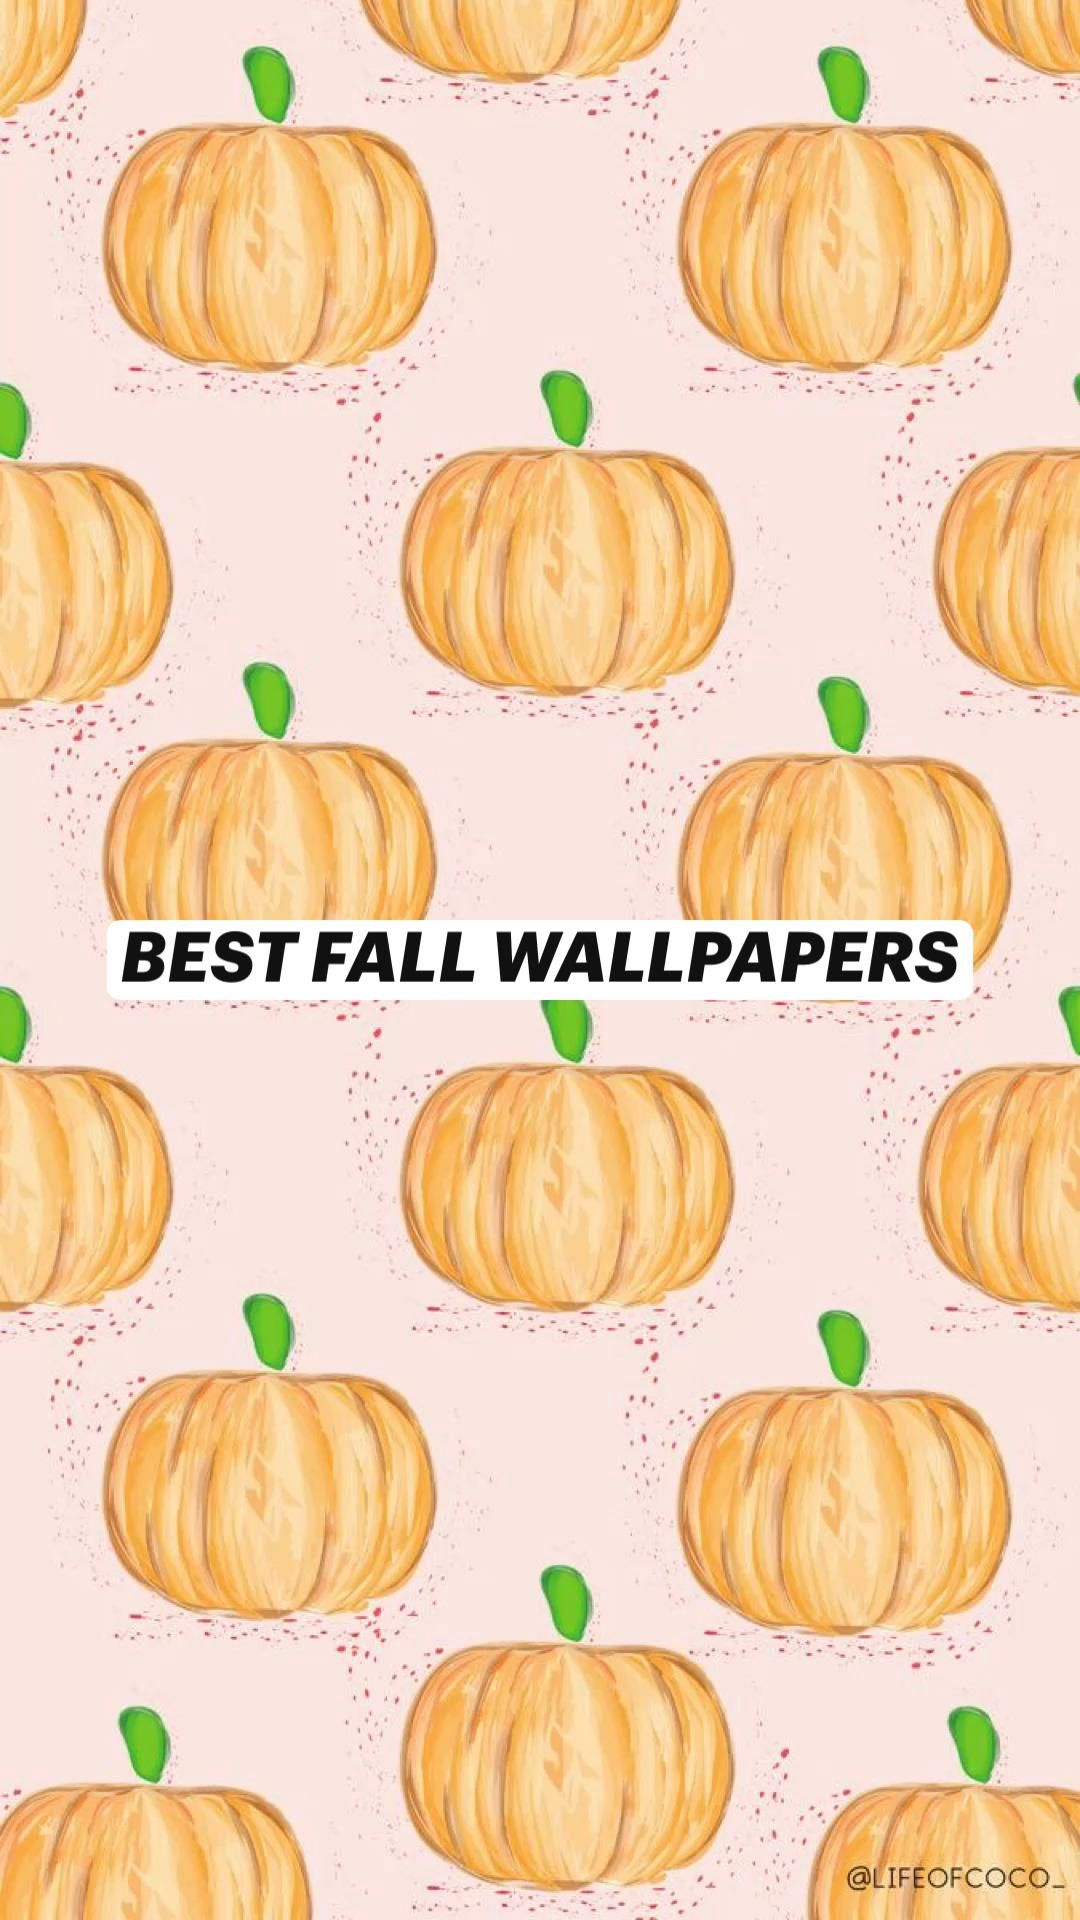 Best Fall Wallpapers